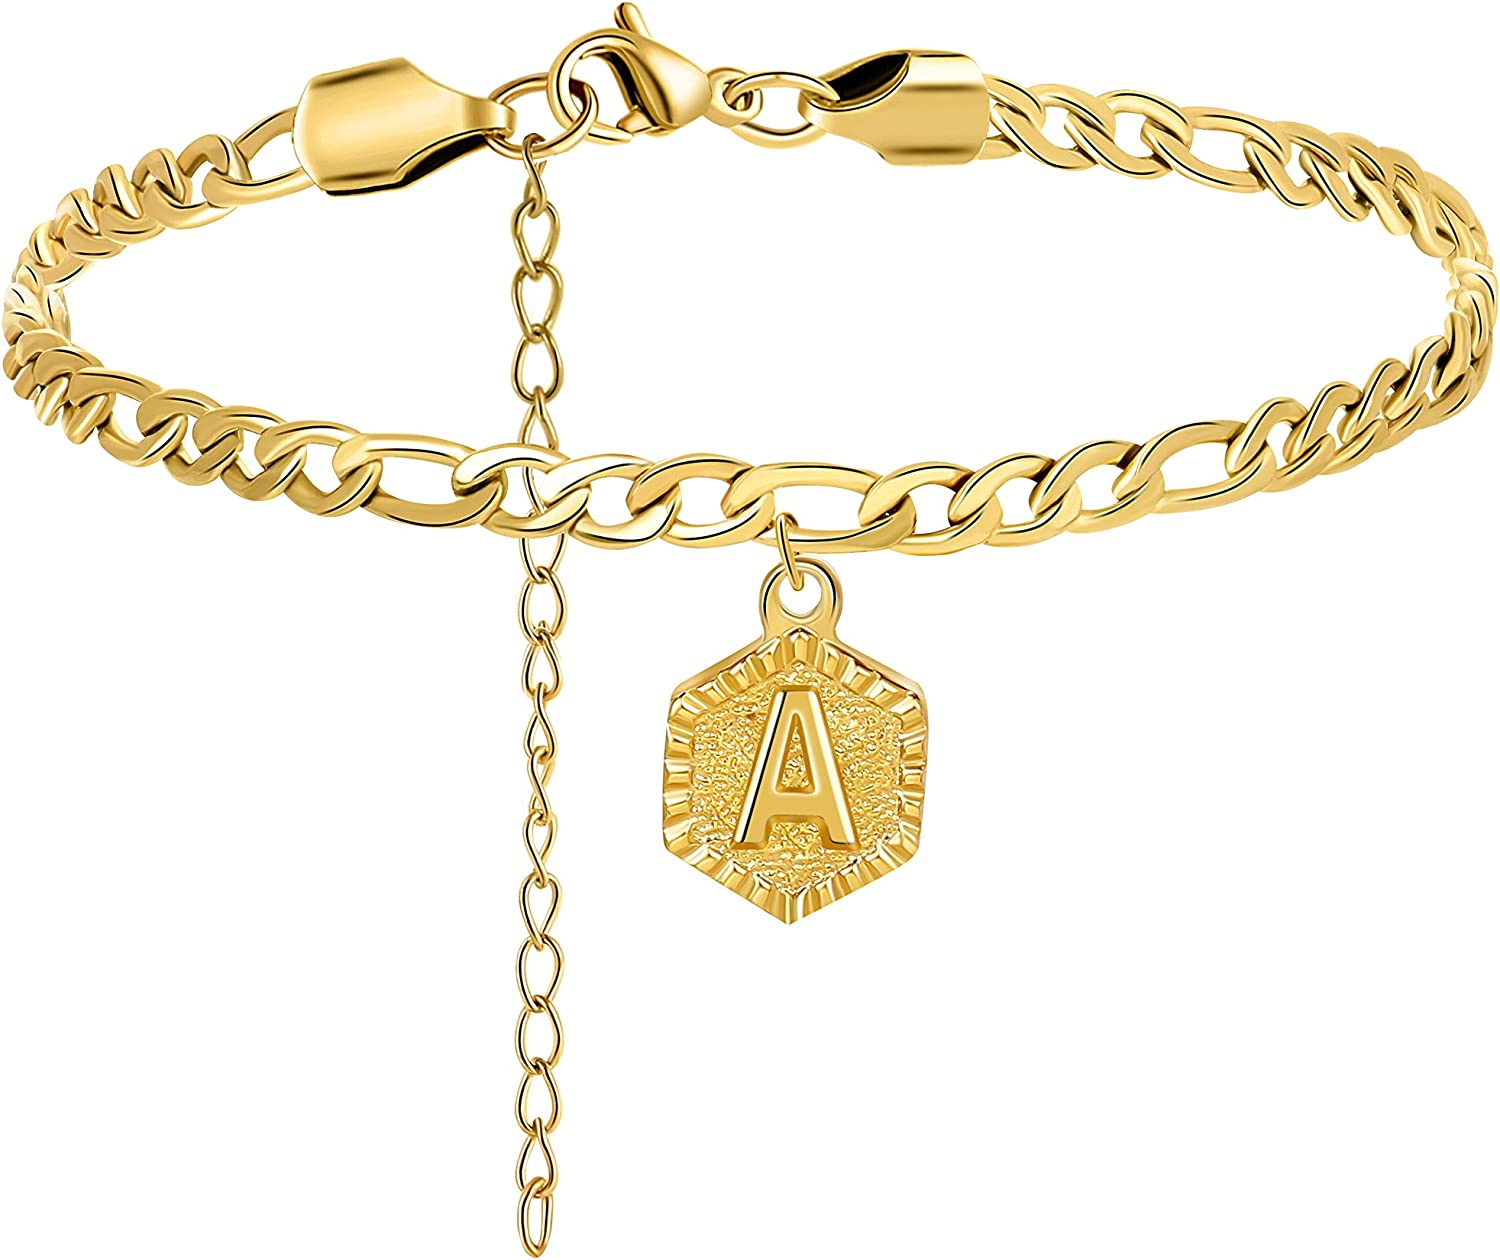 Joycuff 18K Real Gold Plated Figaro Chain Initial Letter Anklets for Women Teen Girls Bridesmaid Fashion Ankle Bracelet with 26 Alphabets Personalized Beach Foot Jewelry with Extension